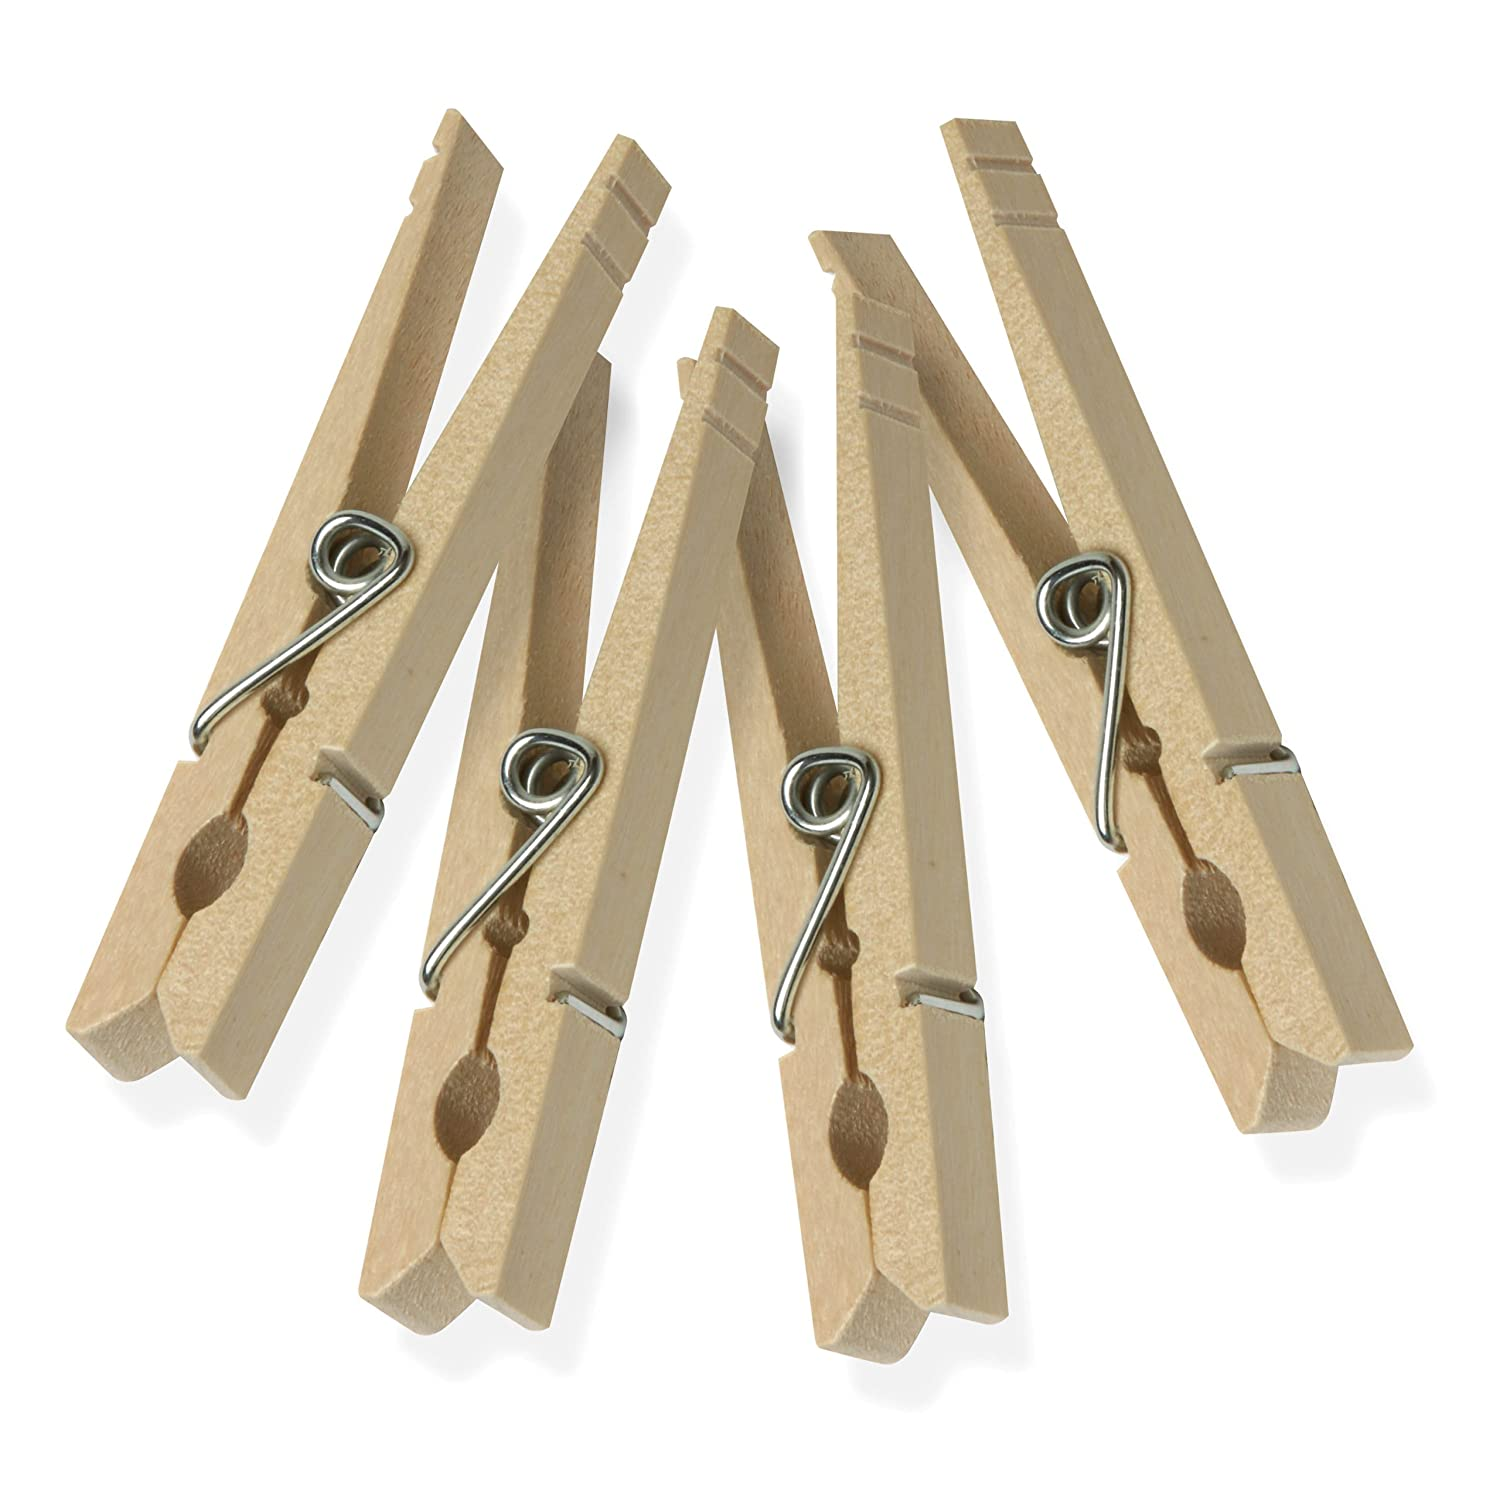 Honey-Can-Do Clothes Pins Traditional Wood with Spring 50-Pack Wooden Clothespins - Love drying your clothes naturally!